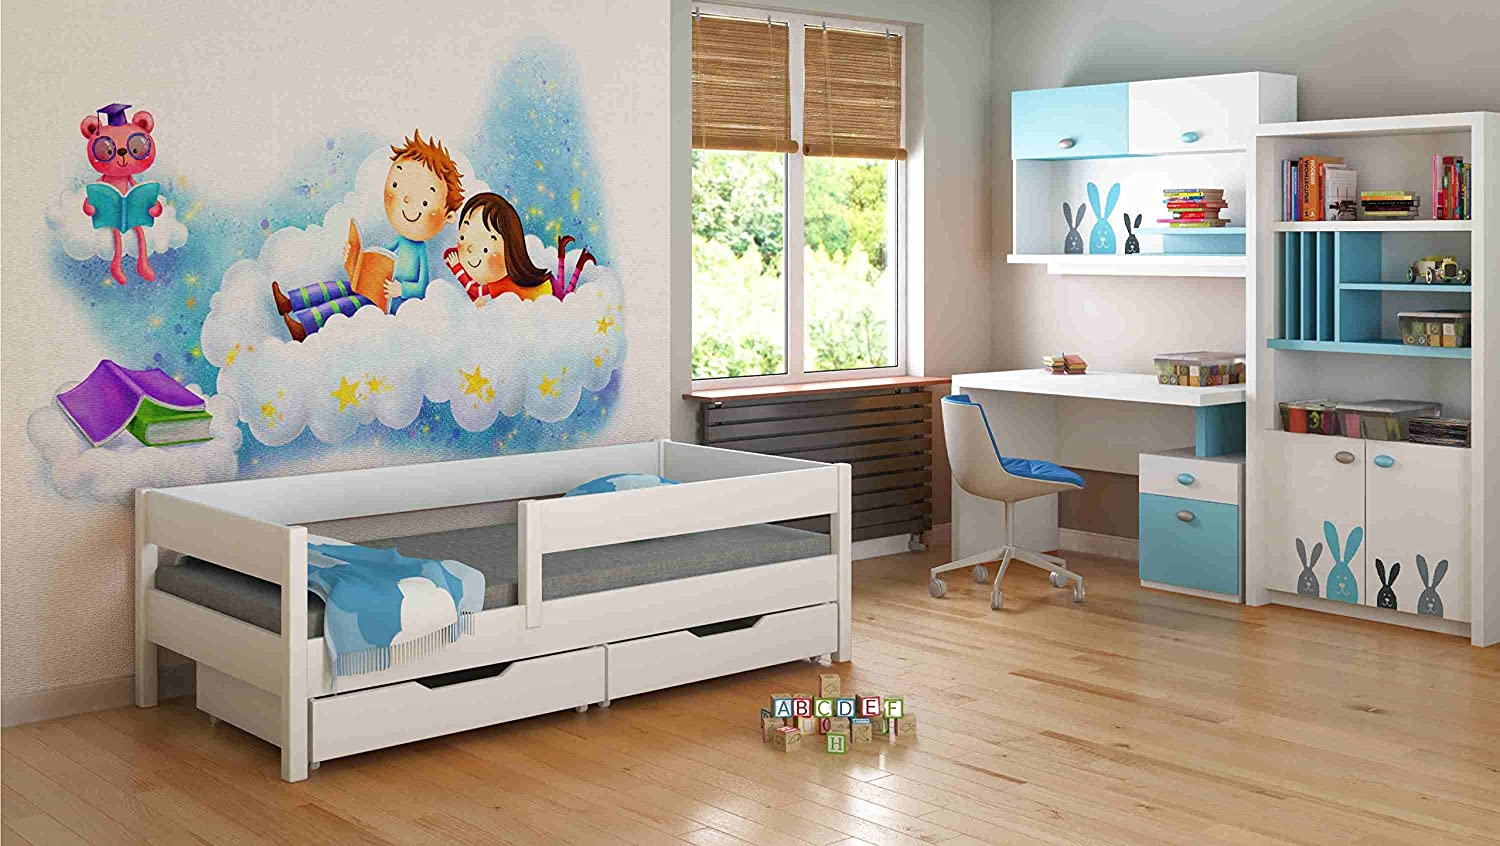 Childrens Beds Home Single Beds For Kids Children Toddler Junior No Drawers No Mattress Included 200x90, White